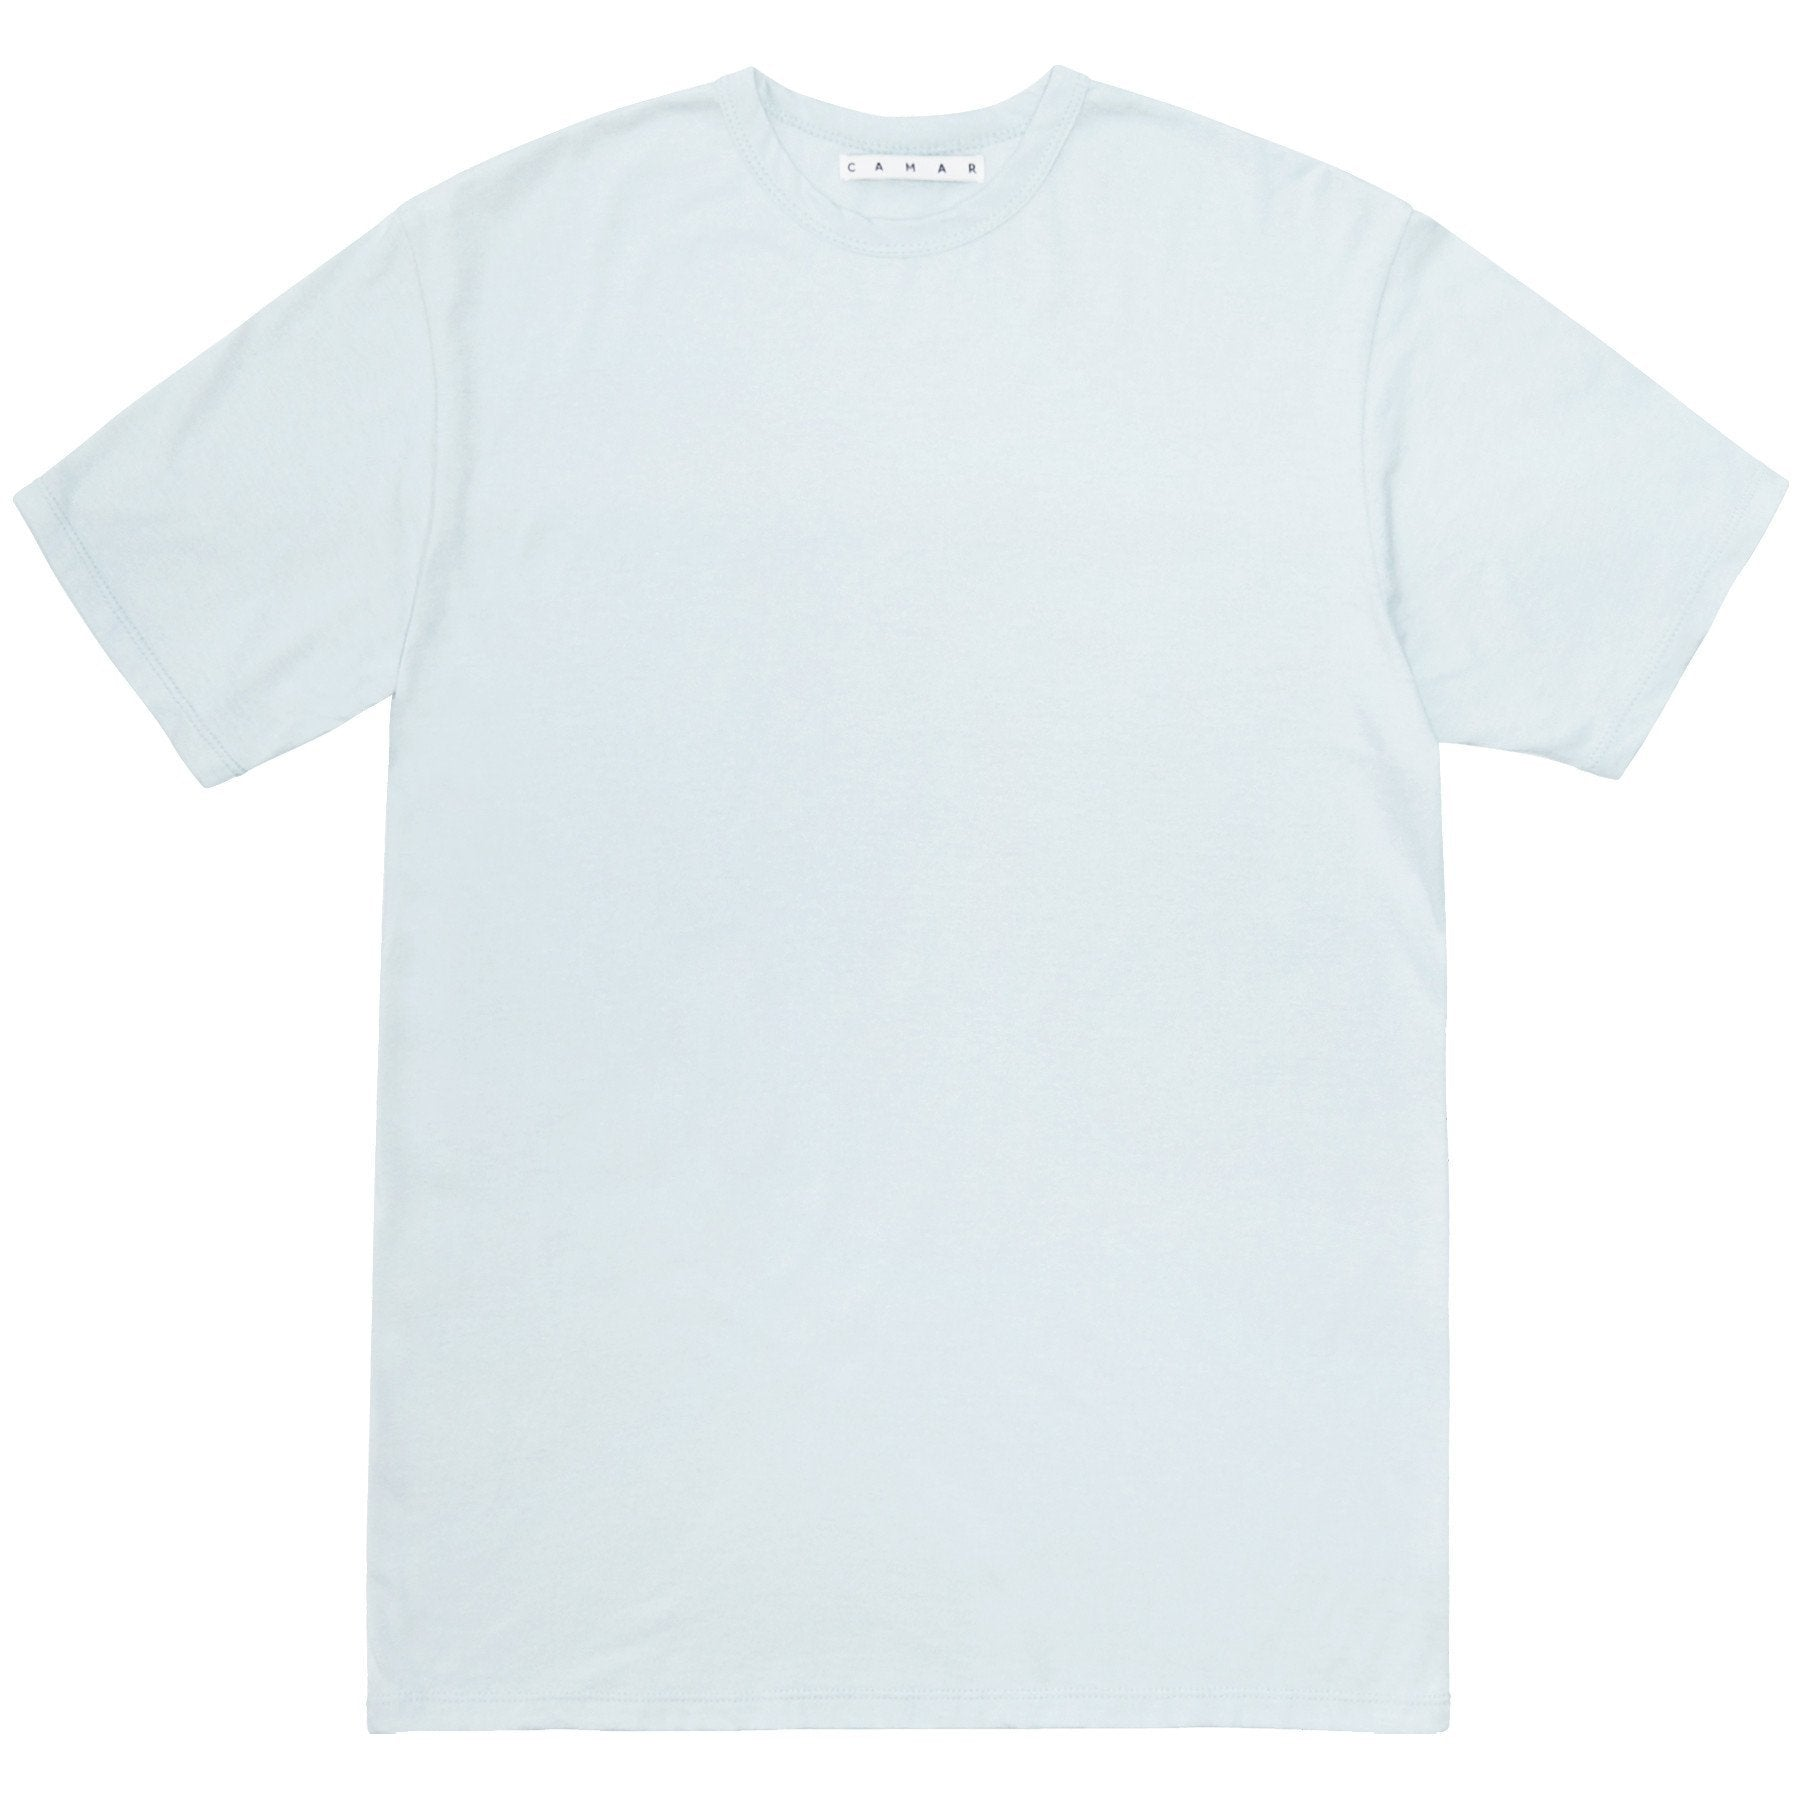 Avon T-Shirt (Pale Blue) - Camar